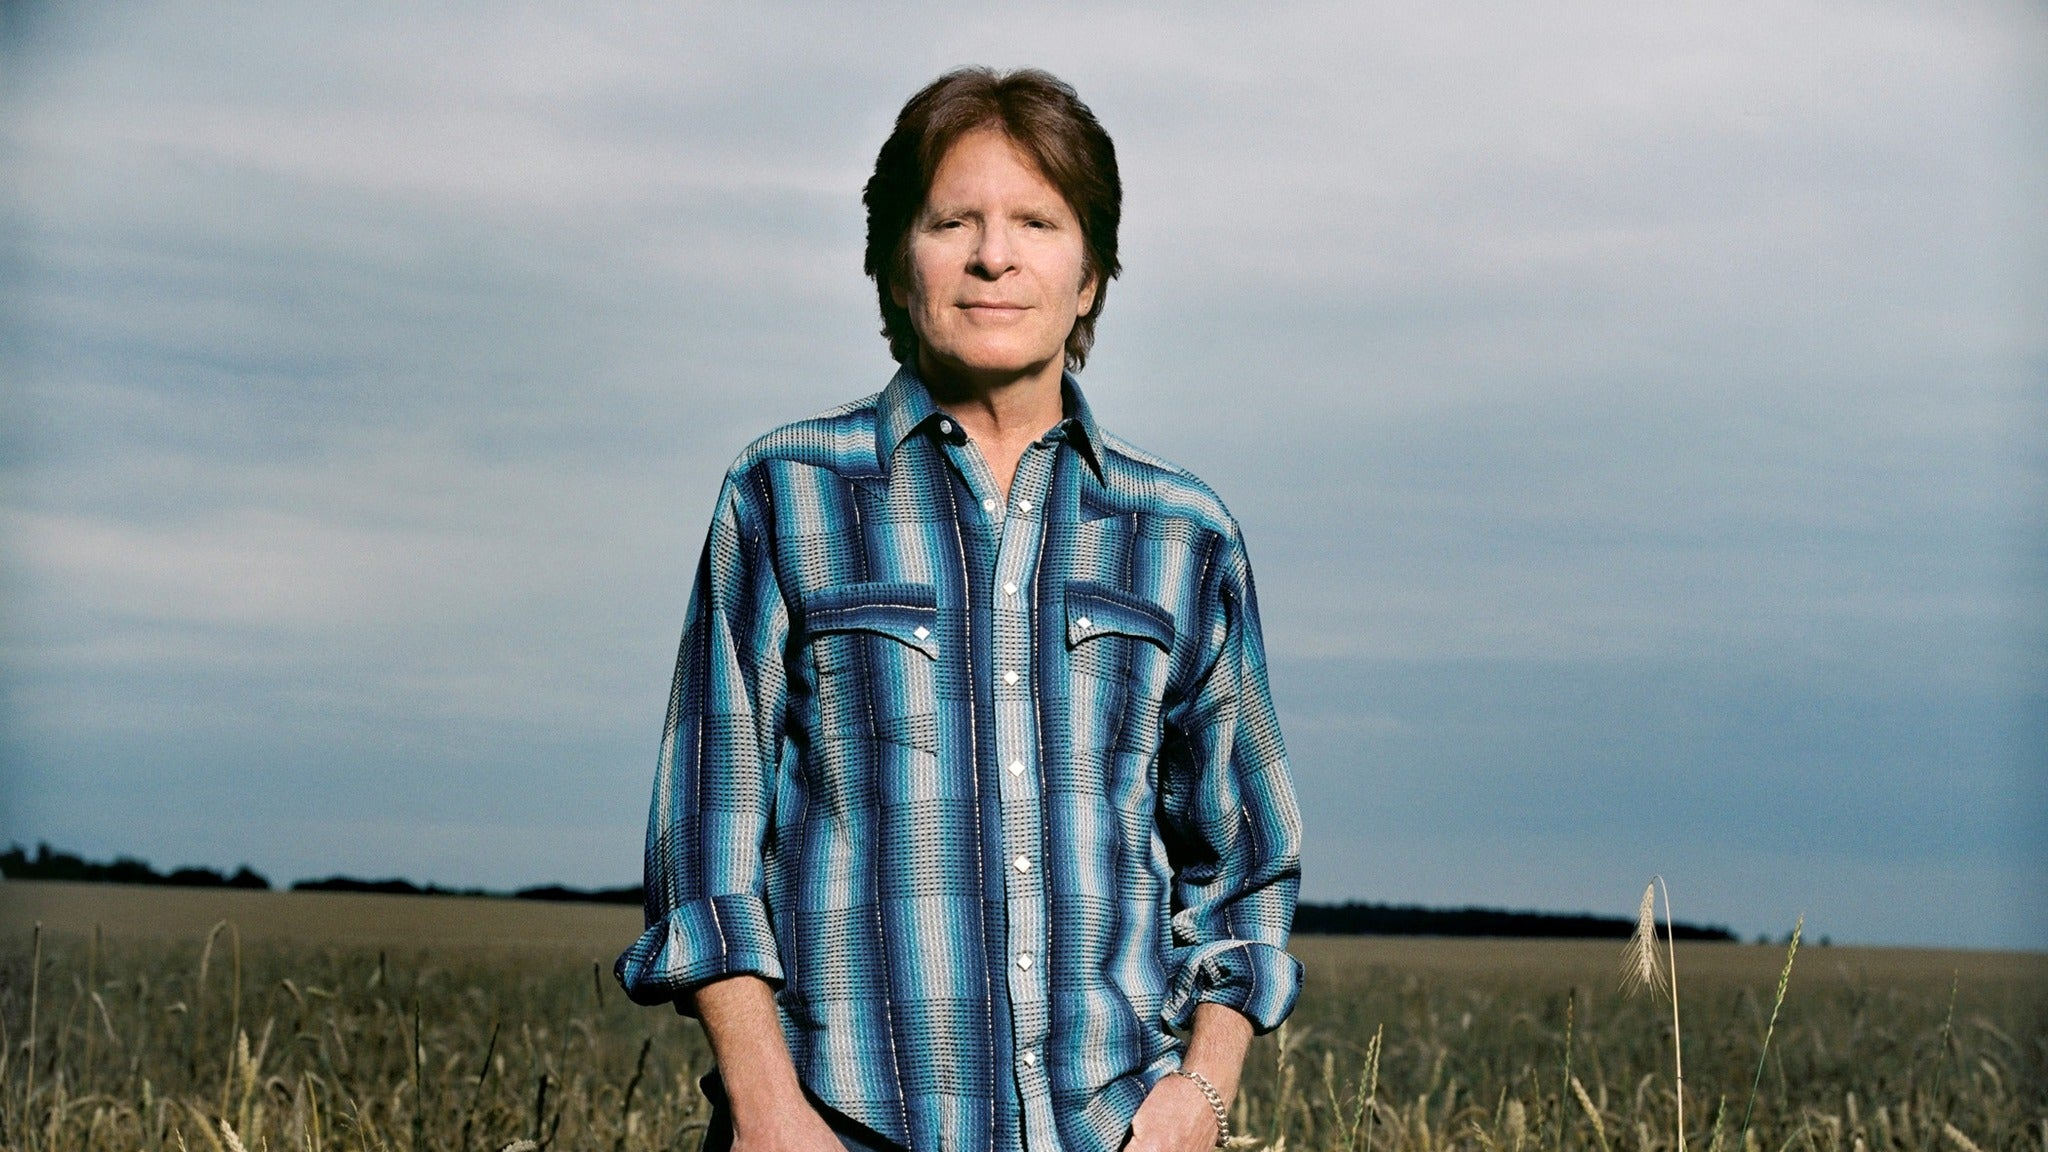 John Fogerty: My 50 Year Trip at Bold Point Park